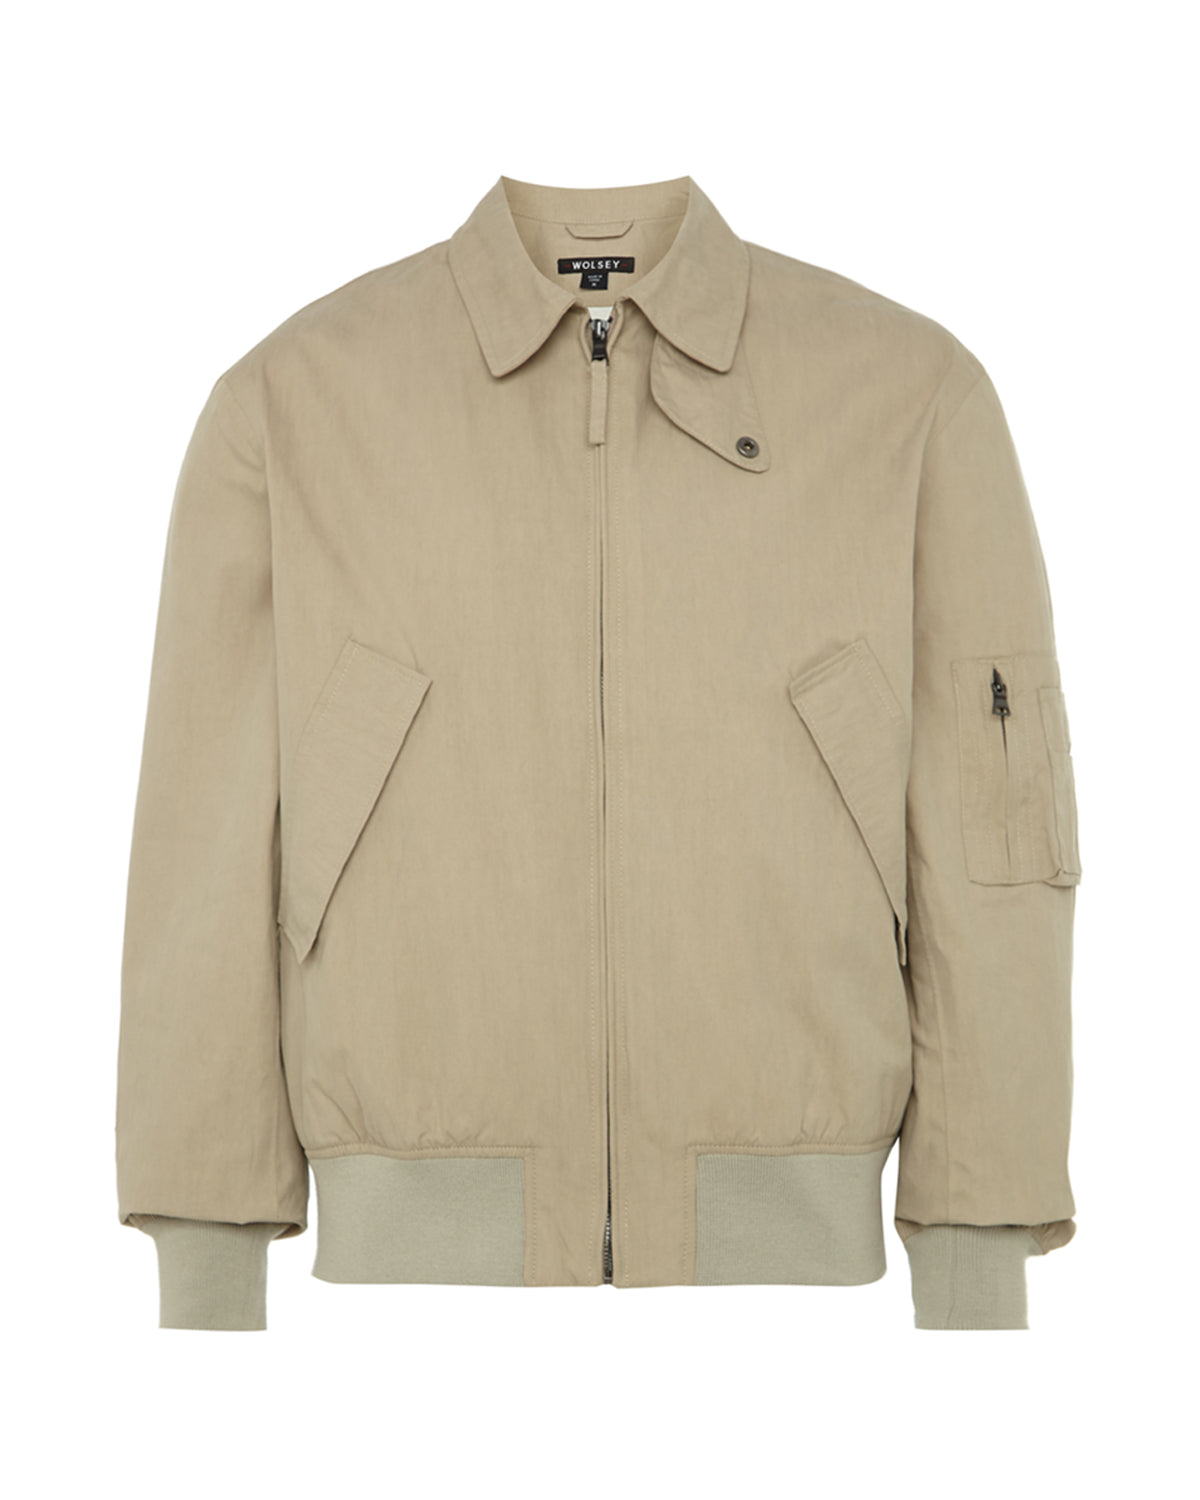 Clay Flight Jacket